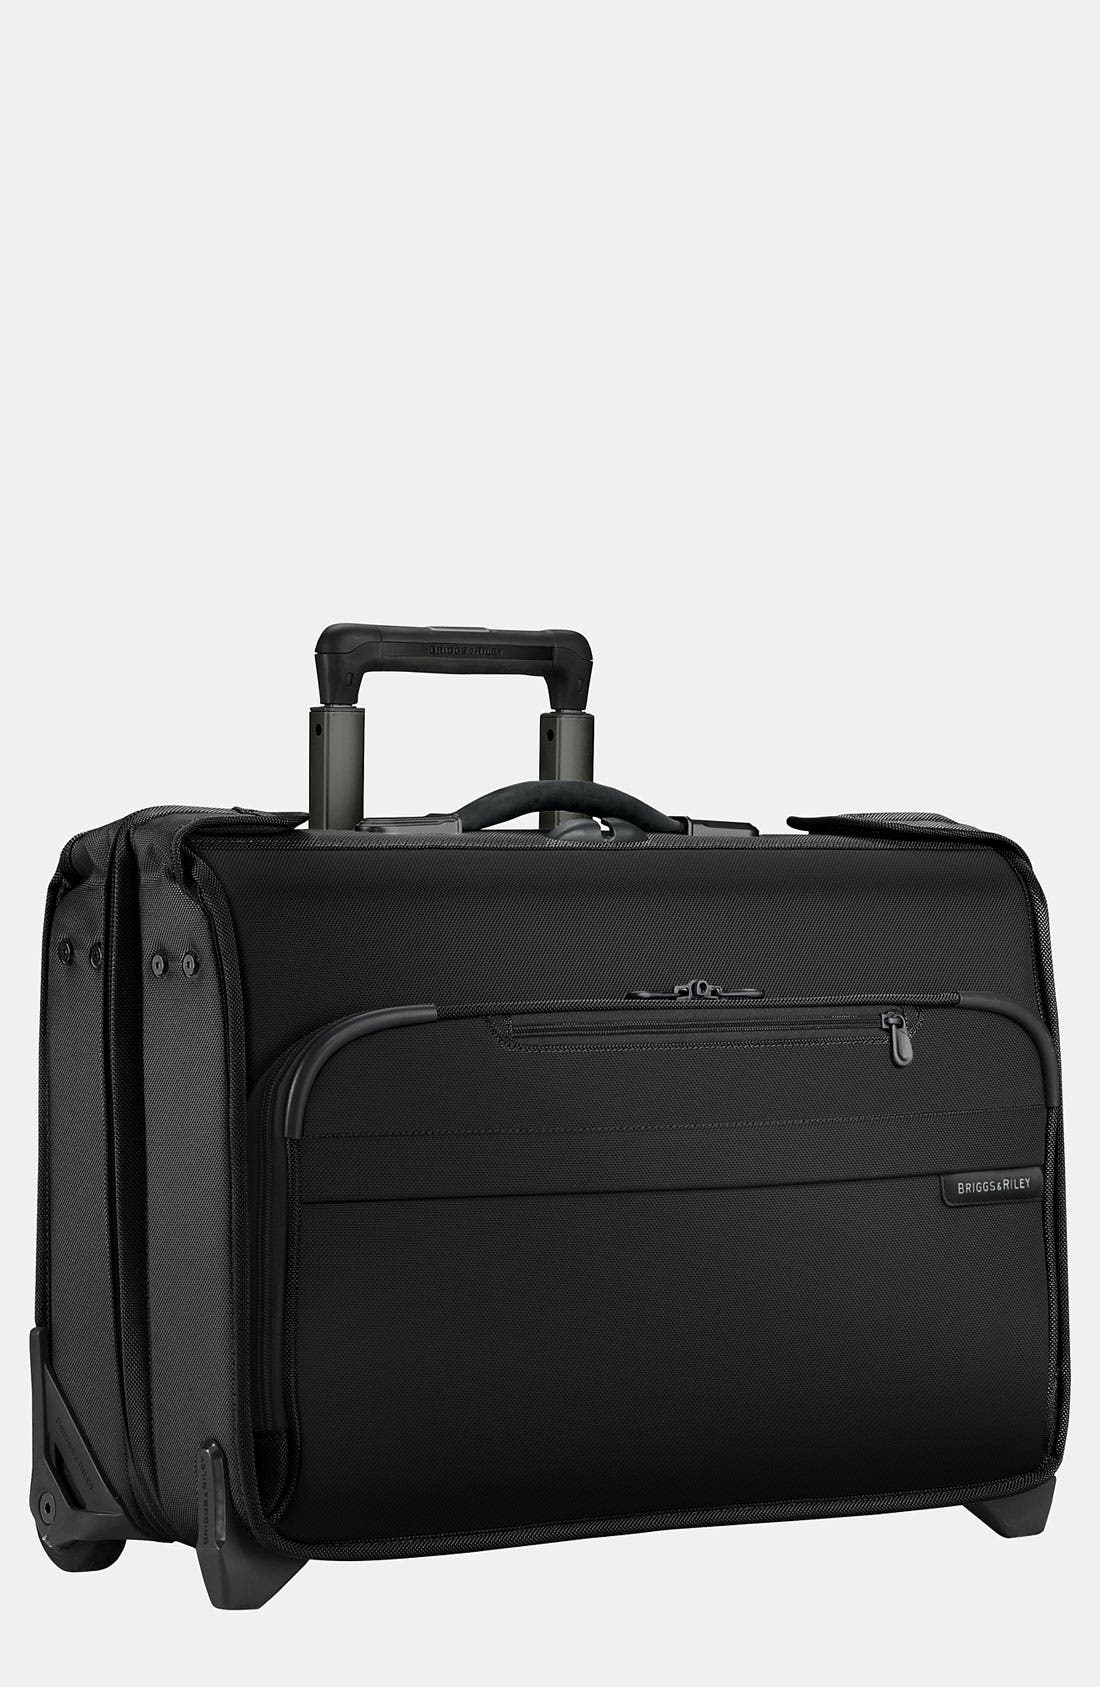 Main Image - Briggs & Riley 'Baseline' Rolling Carry-On Garment Bag